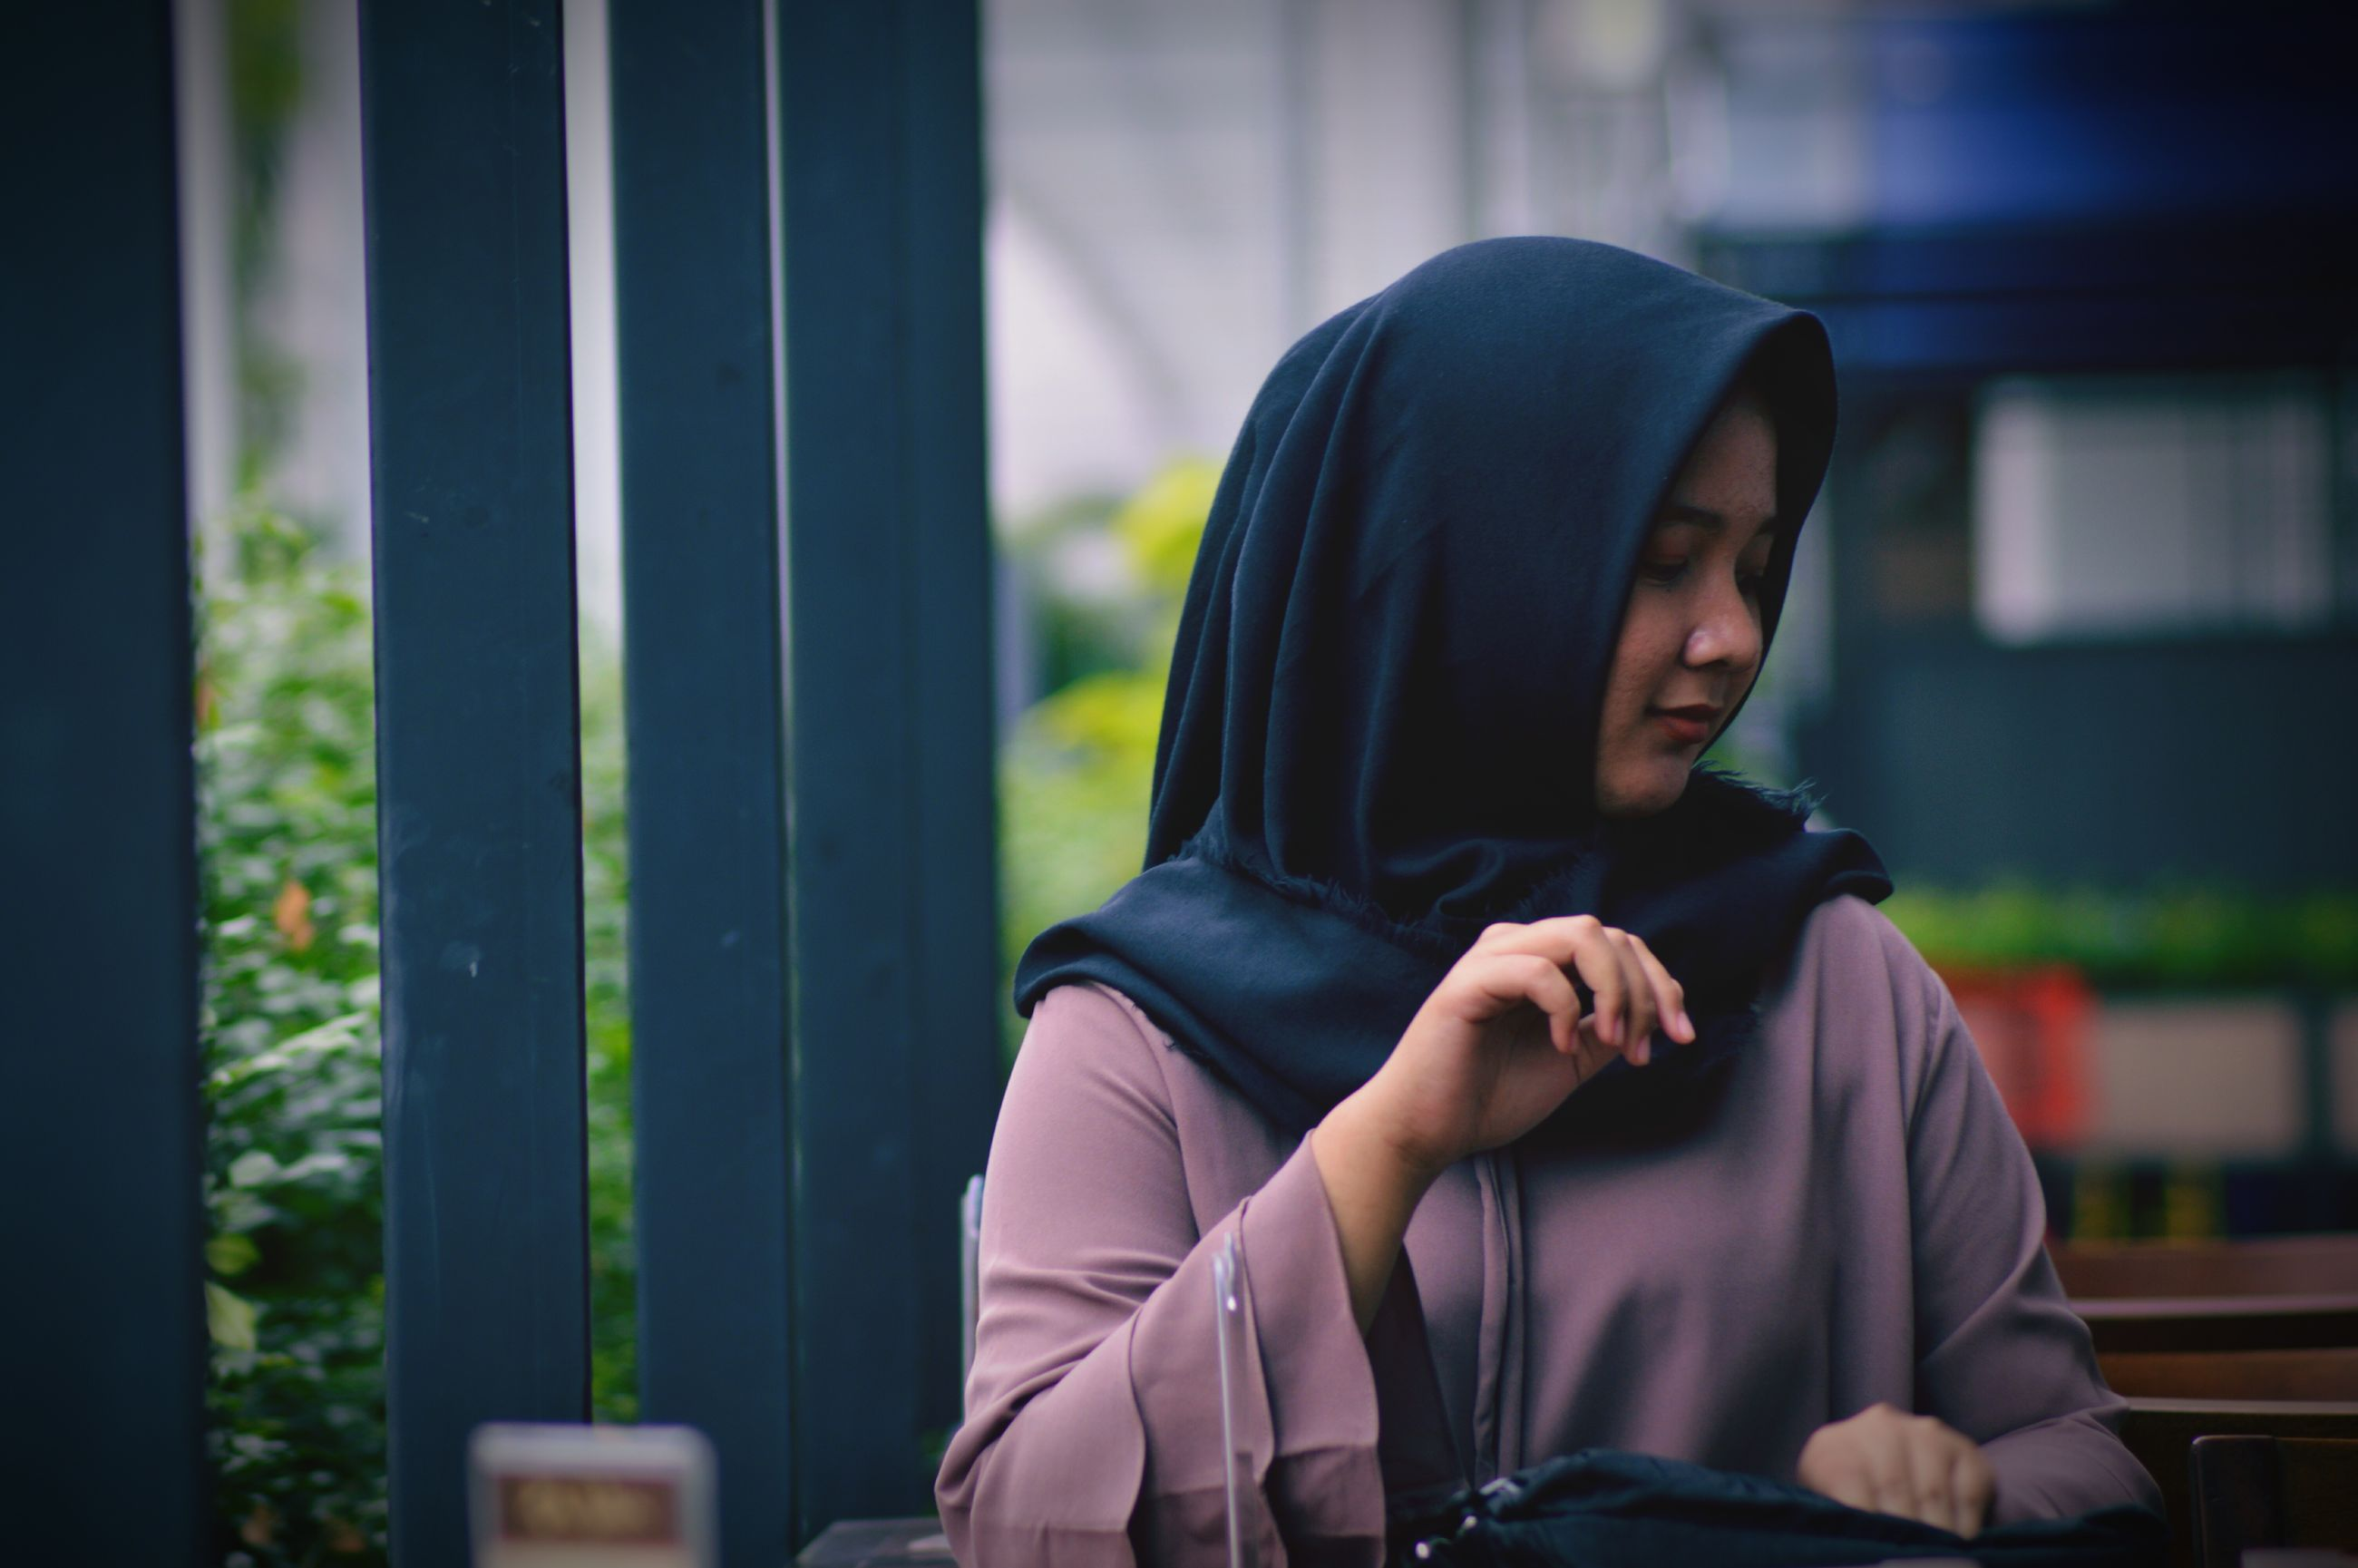 focus on foreground, hood - clothing, real people, hooded shirt, sitting, traditional clothing, one person, day, young adult, lifestyles, outdoors, young women, close-up, people